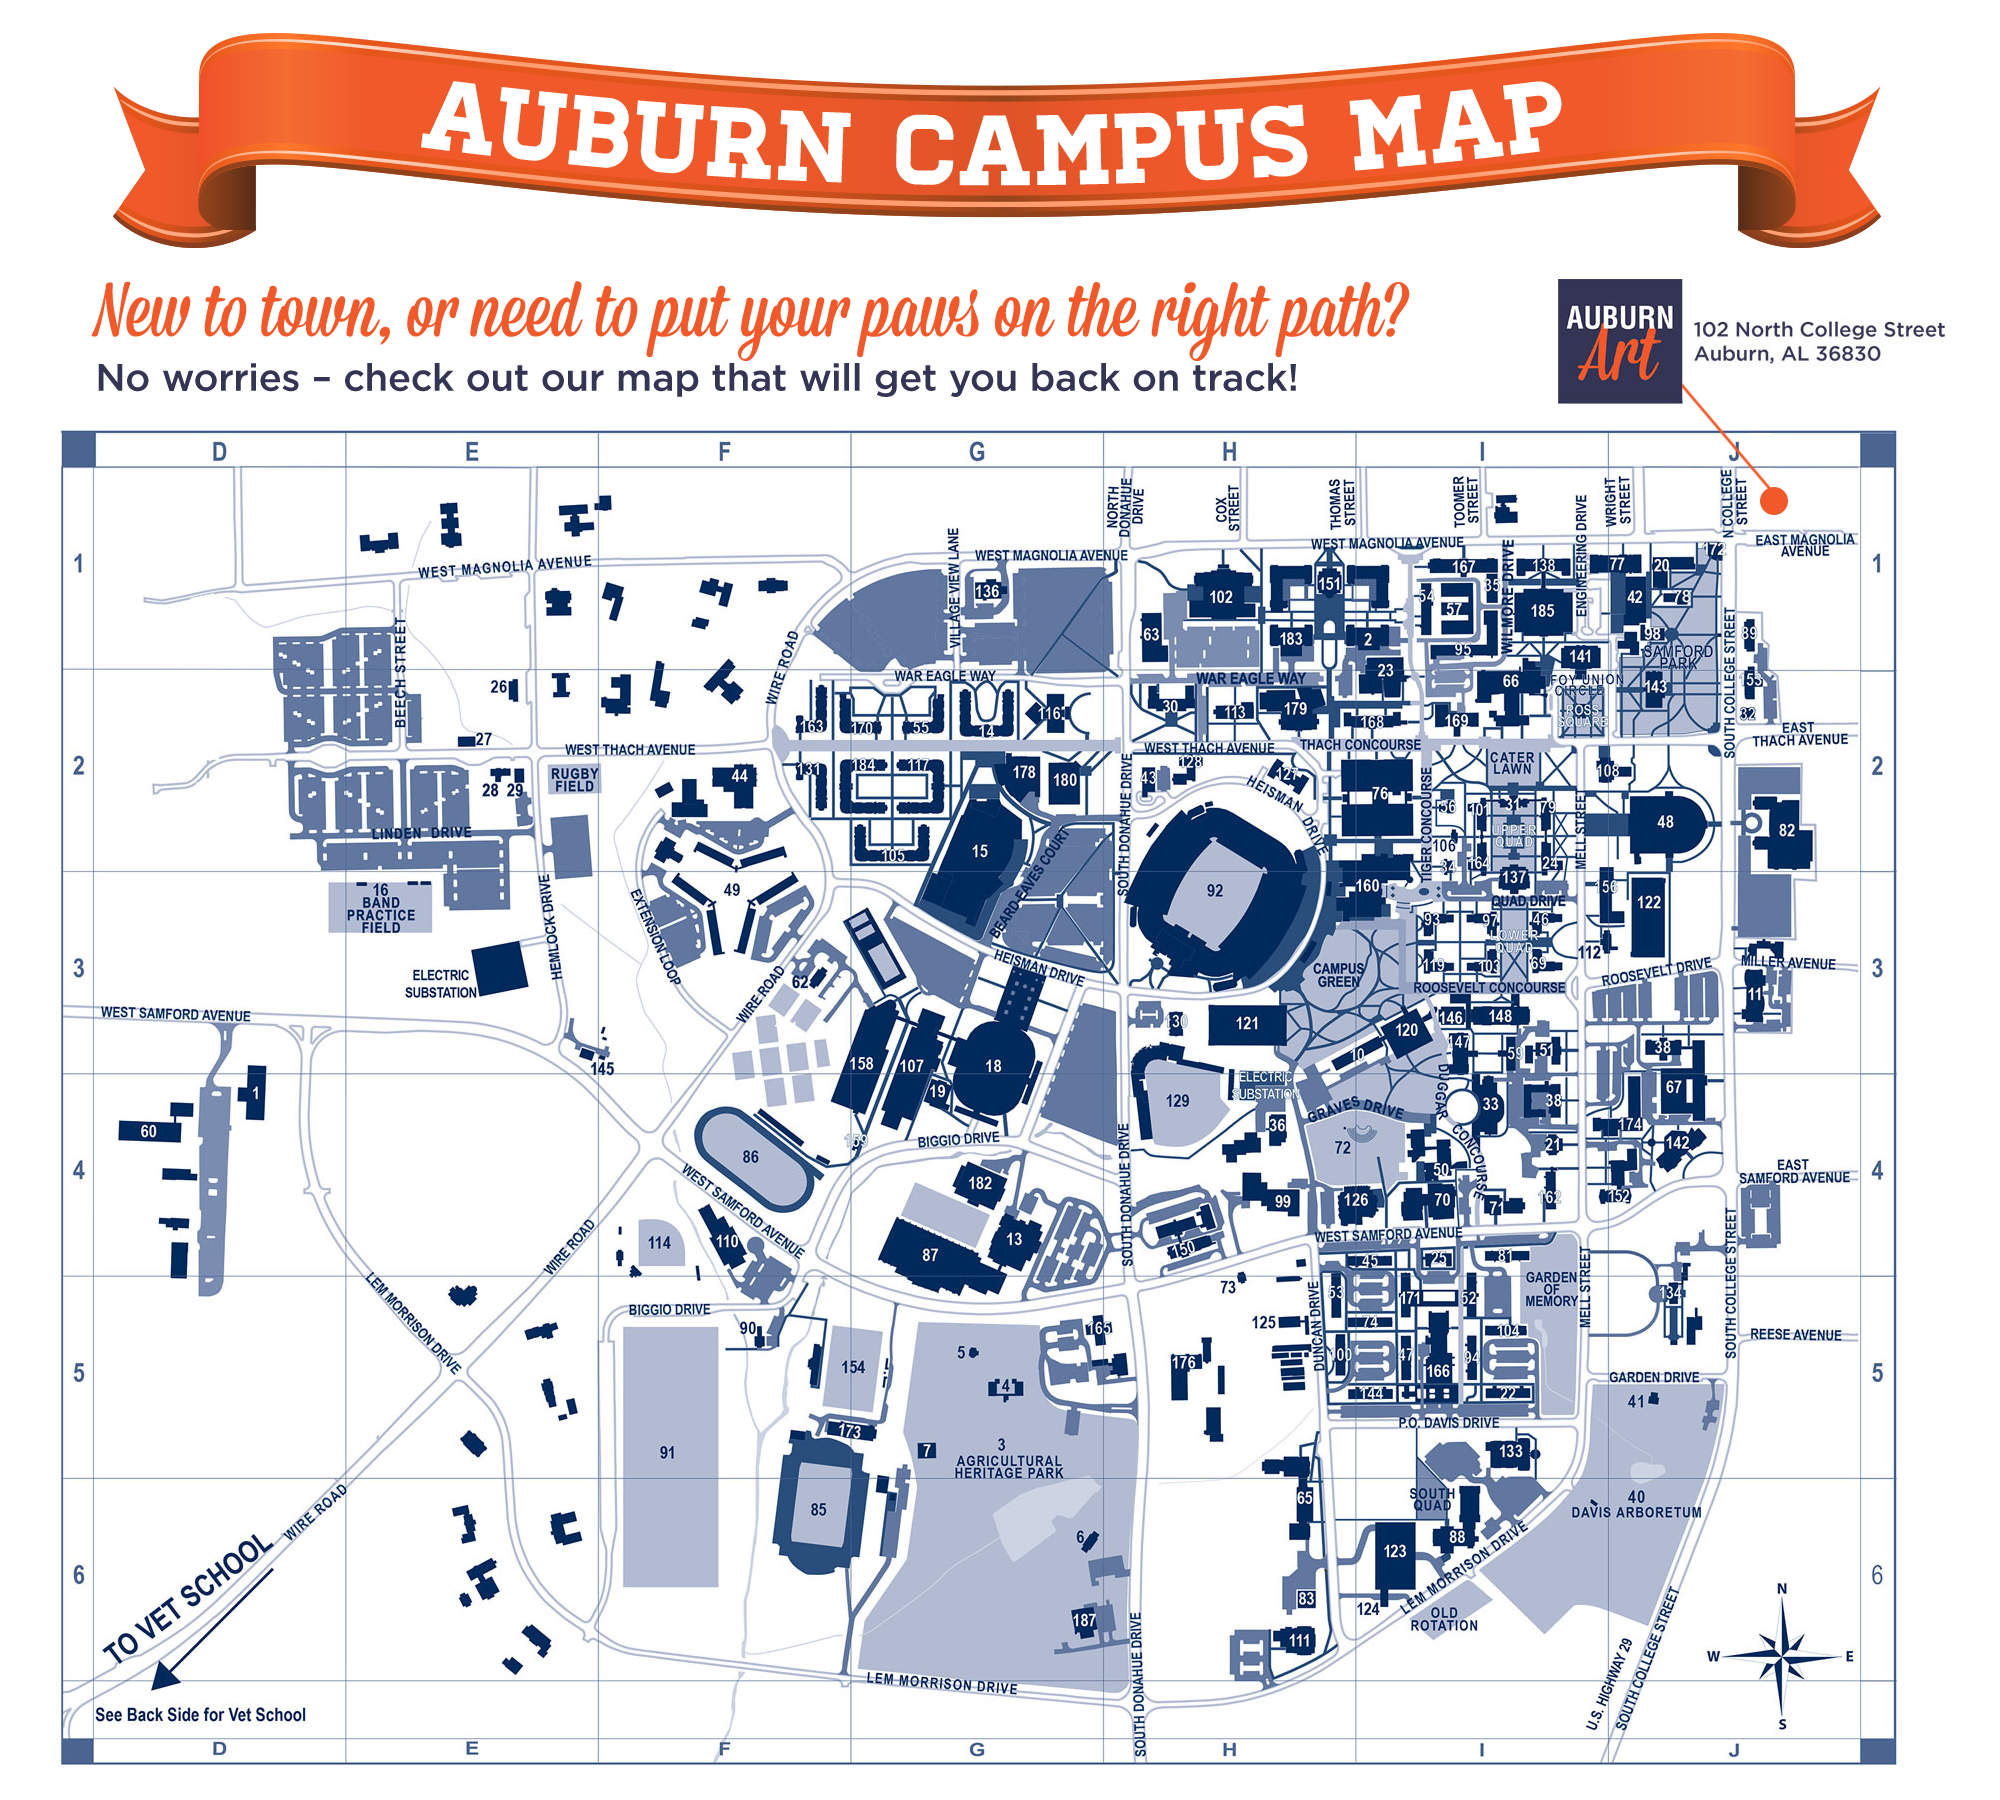 Auburn University Campus Map Auburn University Campus Map – Auburn Art